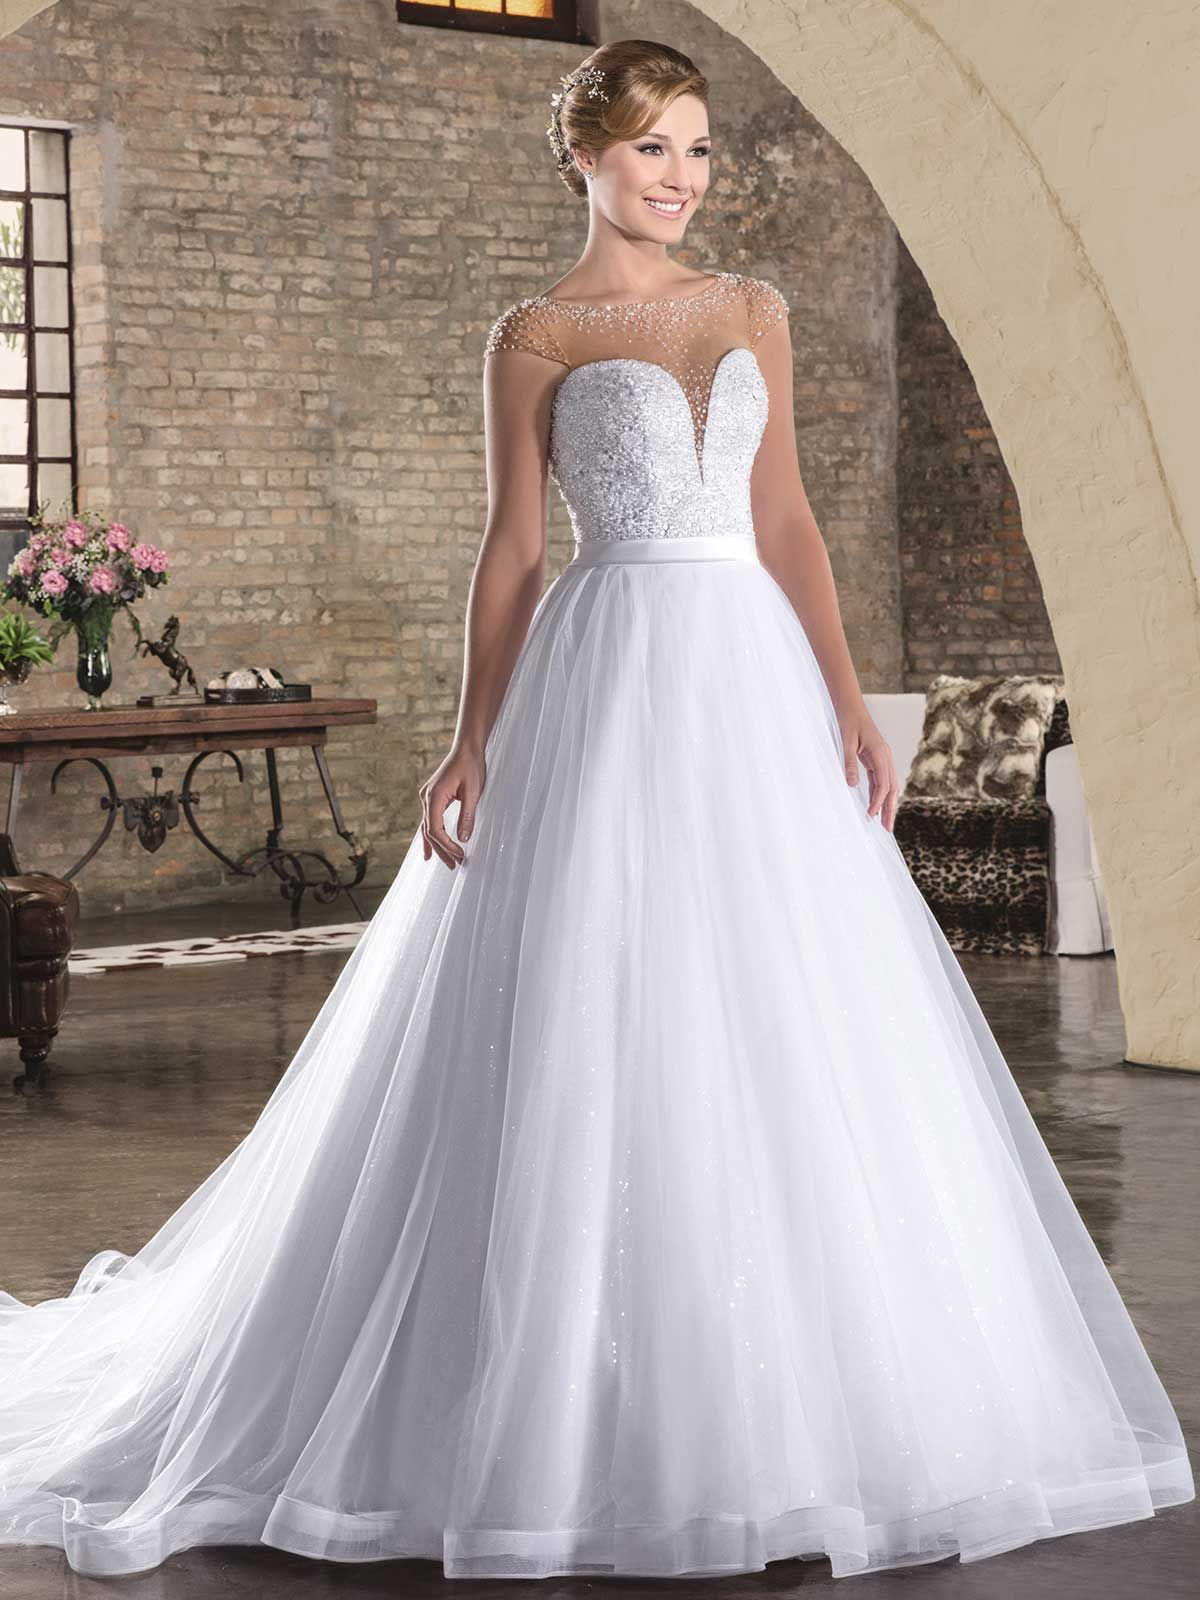 Pin by Anna Schoof on Wedding dresses and ideas!!! | Pinterest ...